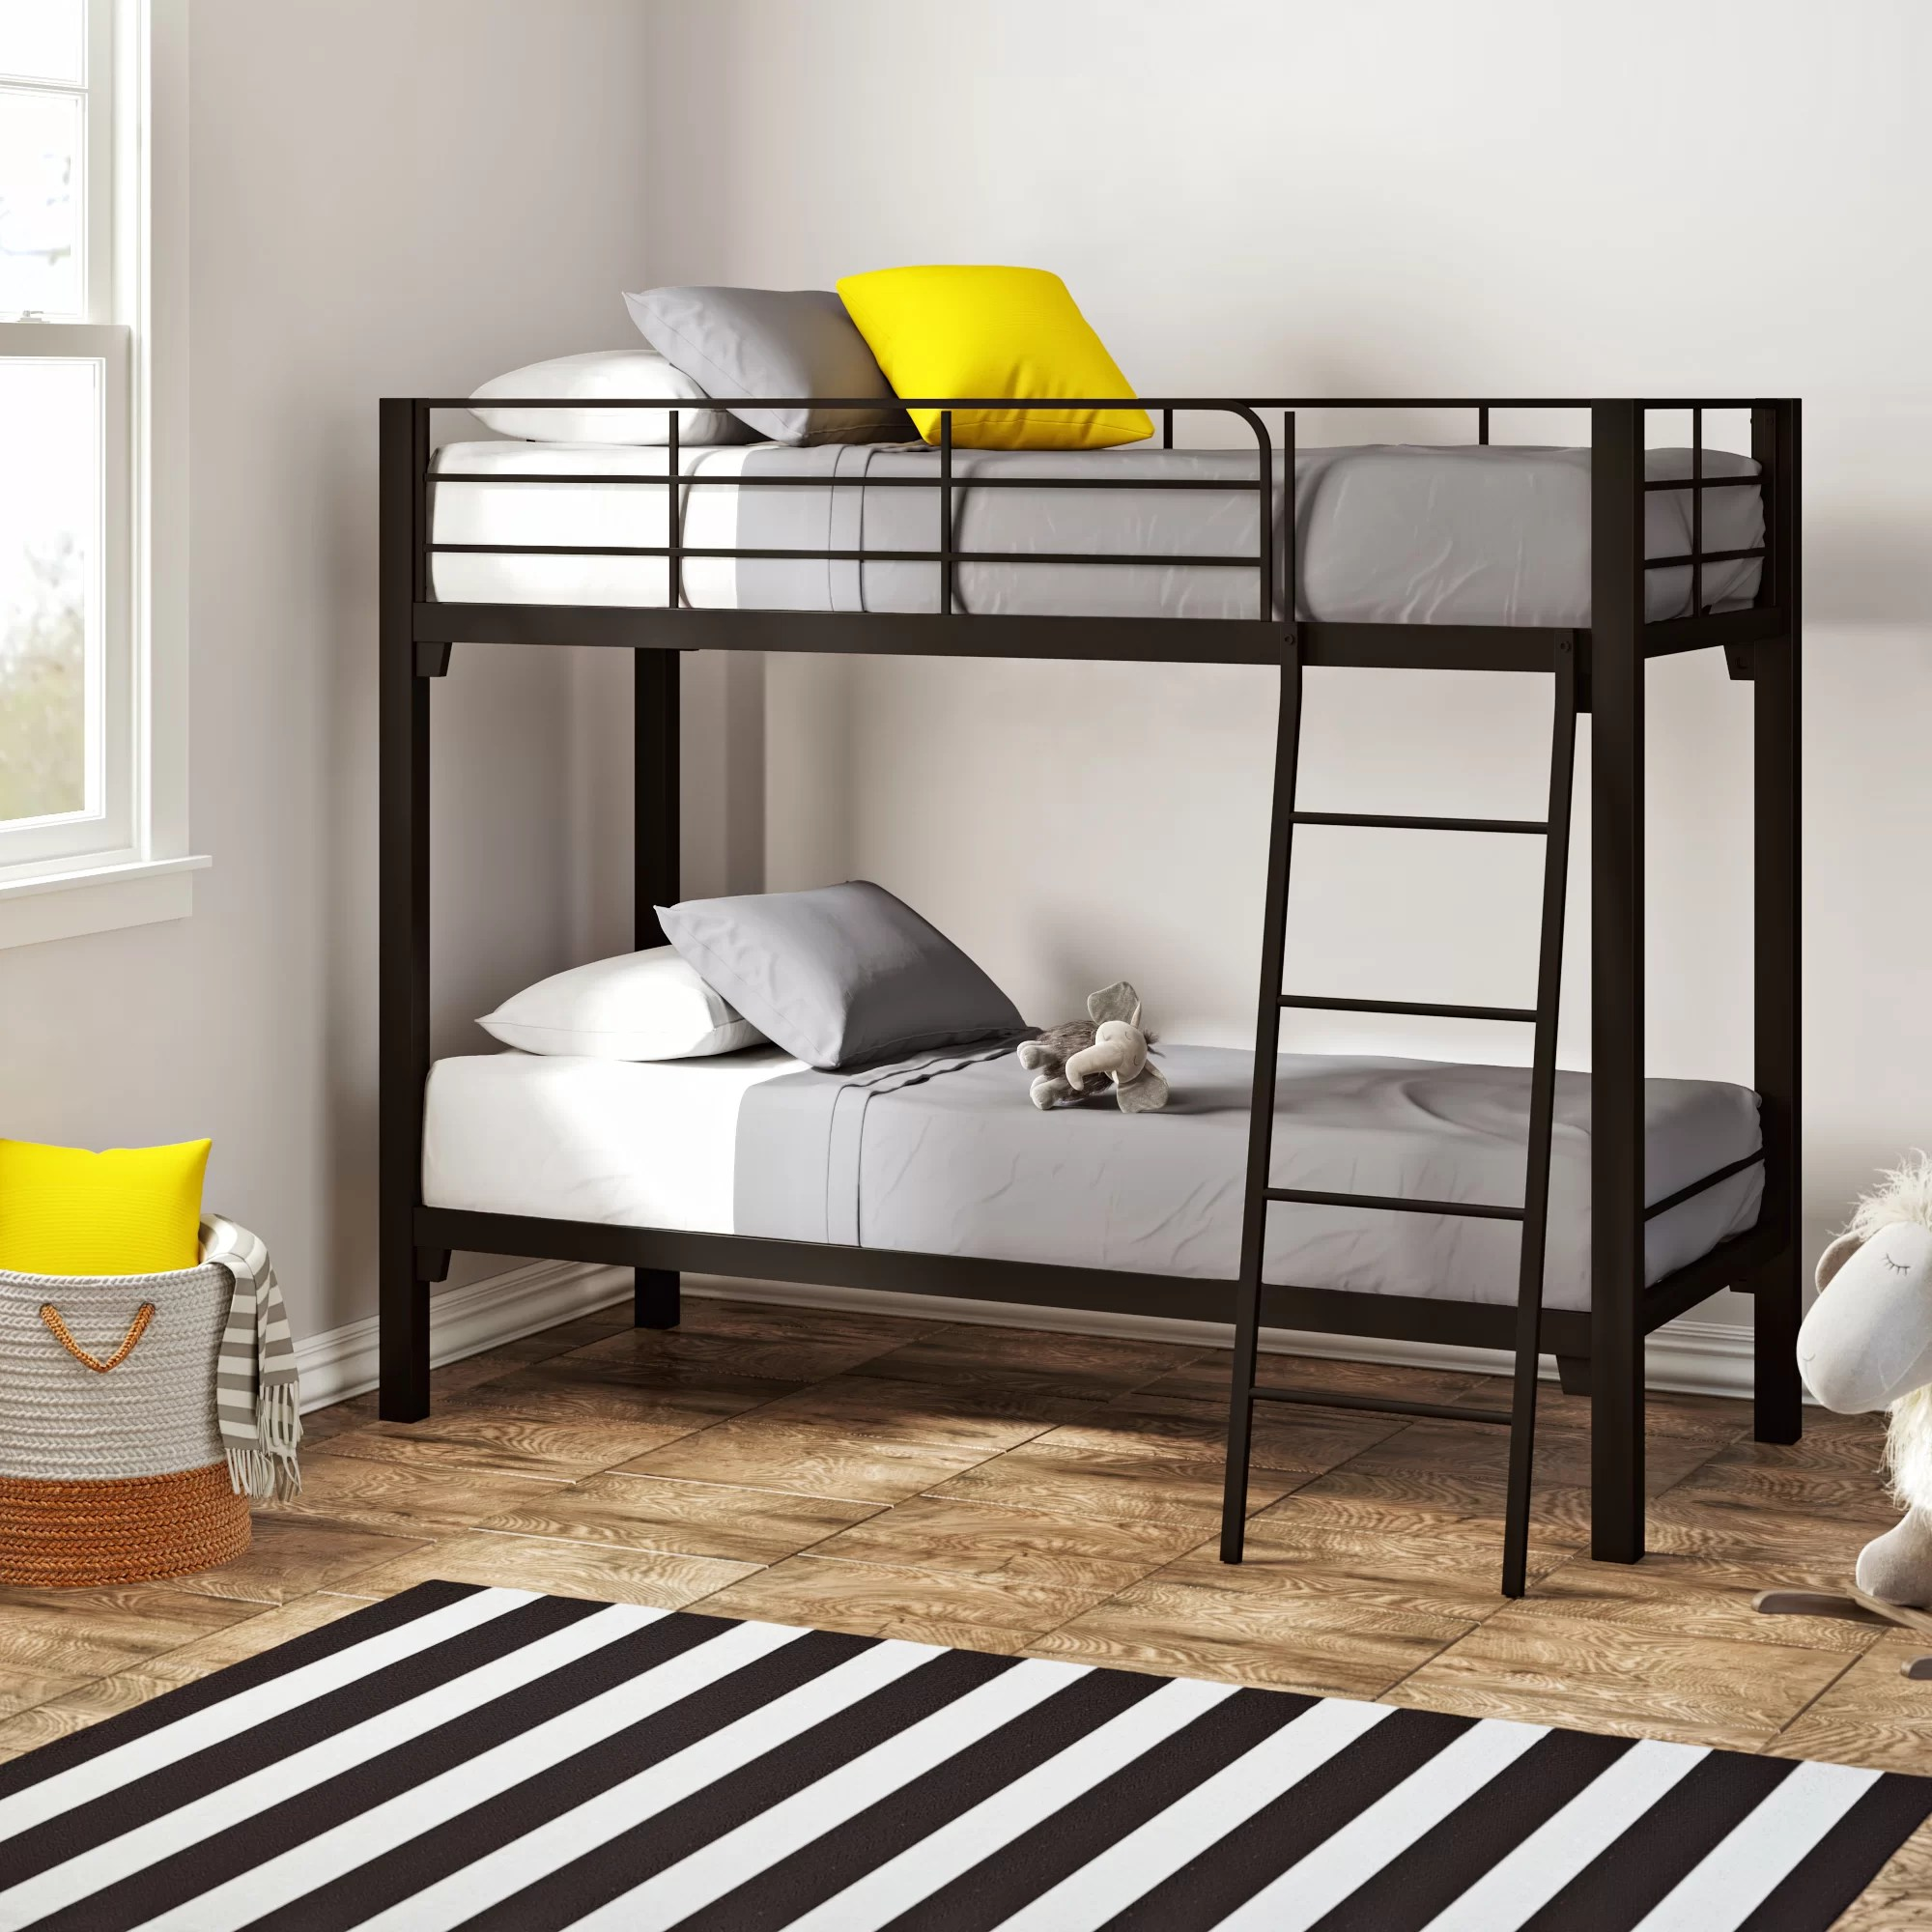 Snooze Bunk Beds Alonzo Twin Over Twin Bunk Bed